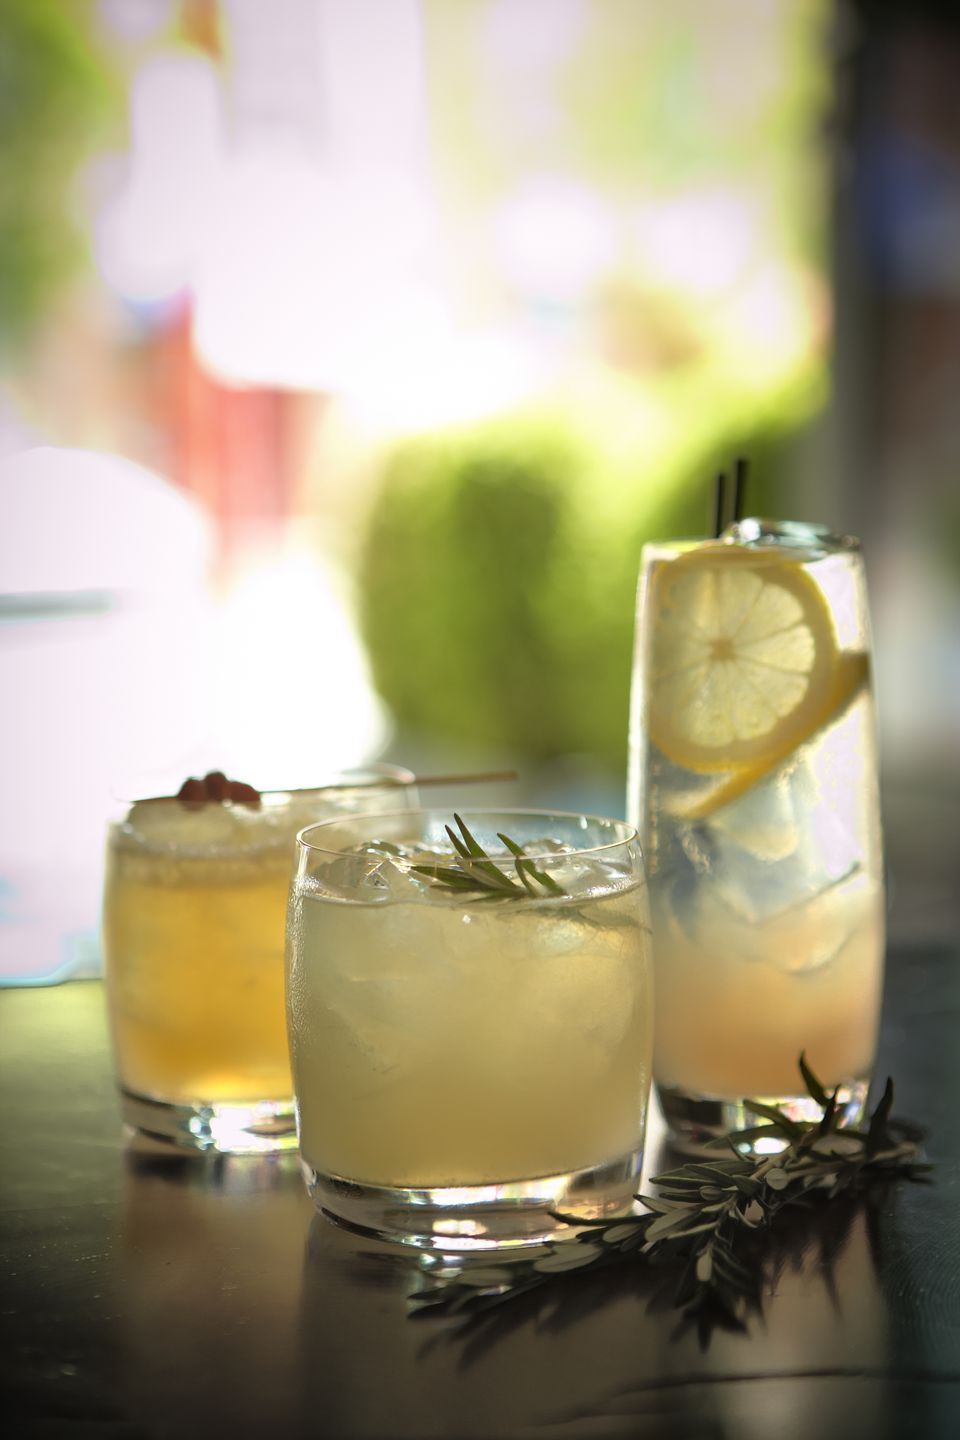 Citrus and herb infused cocktails